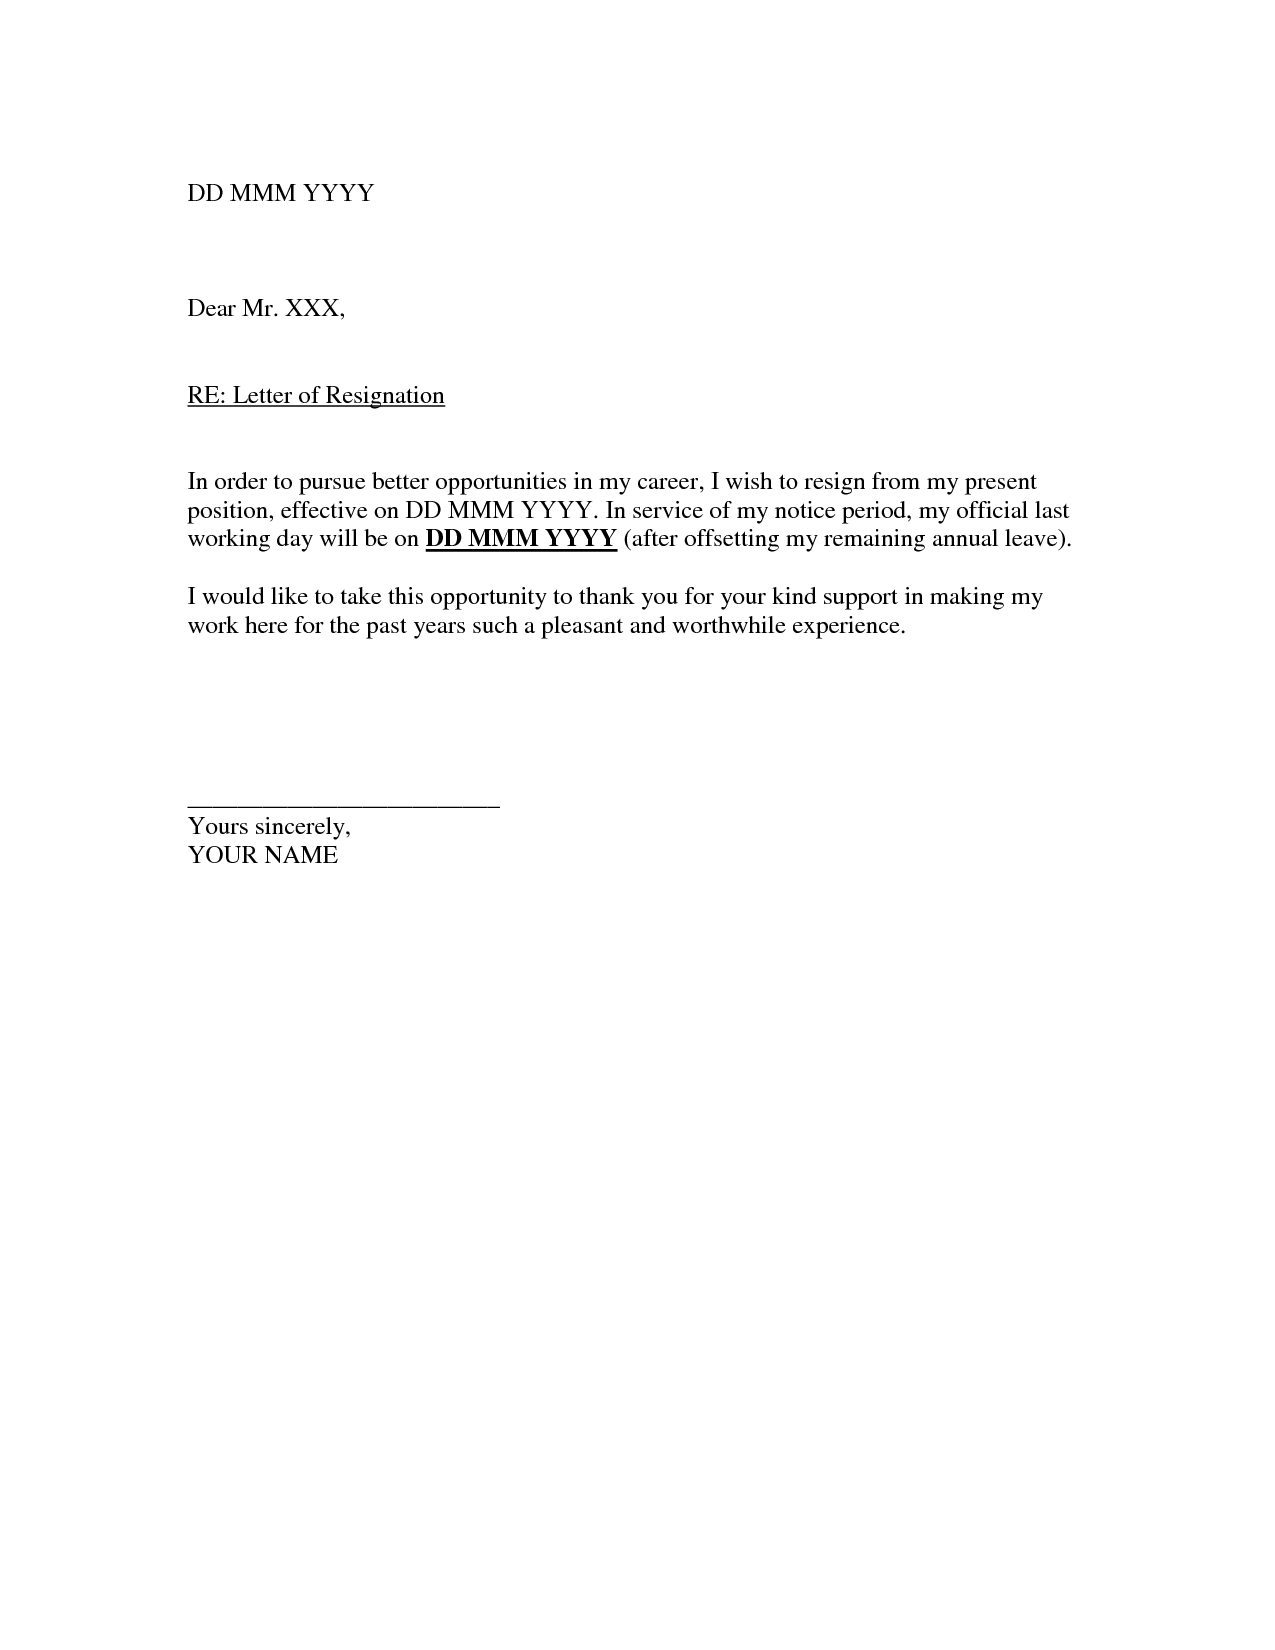 Letter of resignation format samples boatremyeaton letter of resignation format samples expocarfo Images